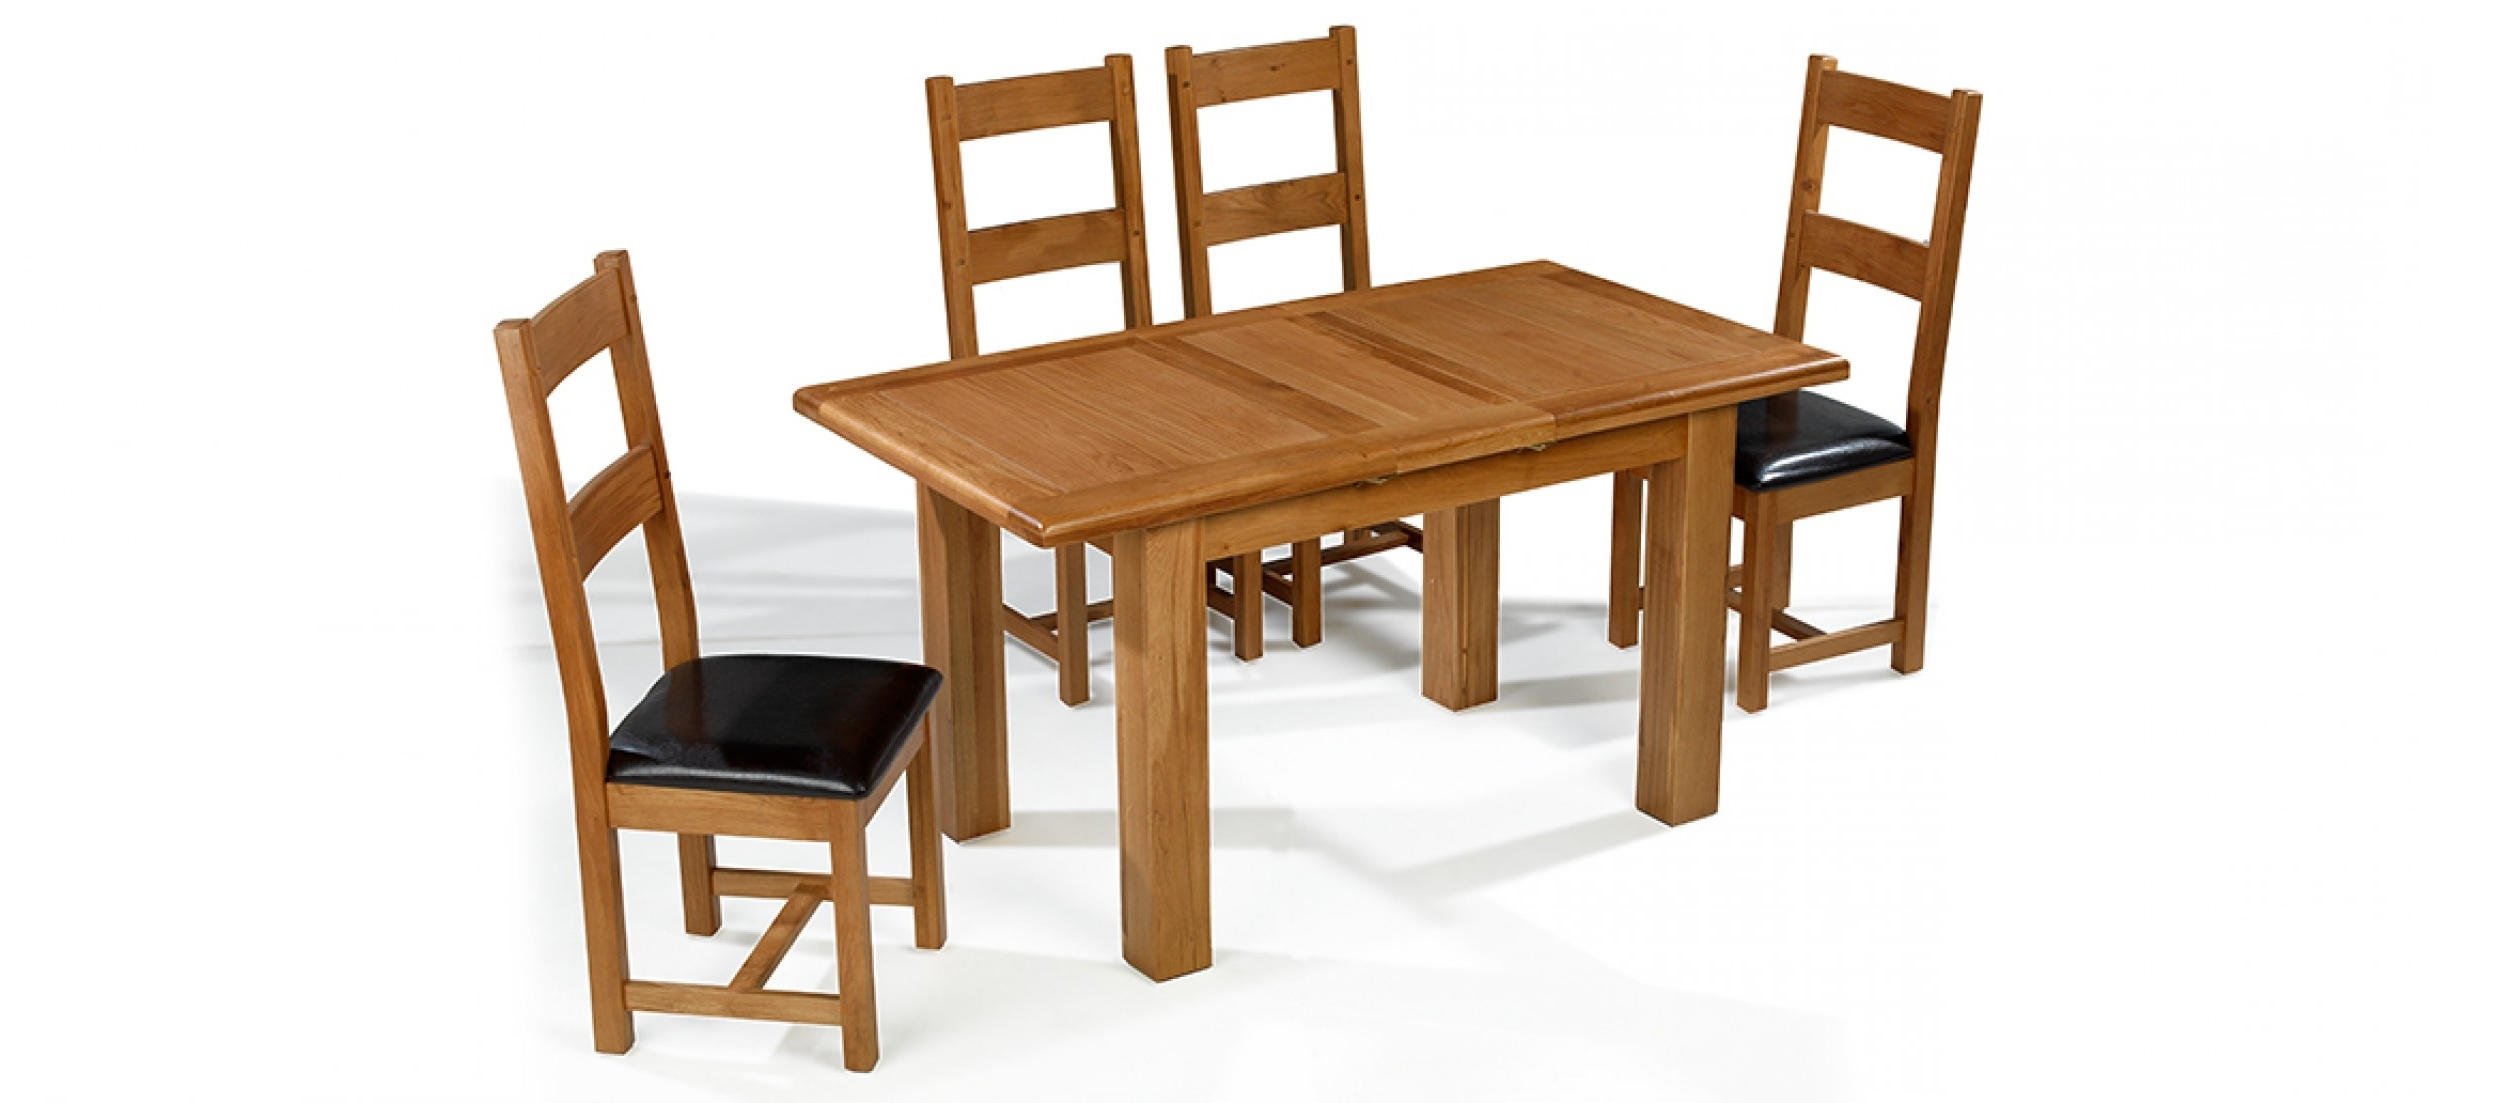 Widely Used Barham Oak 120 150 Cm Extending Dining Table And 4 Chairs (View 24 of 25)